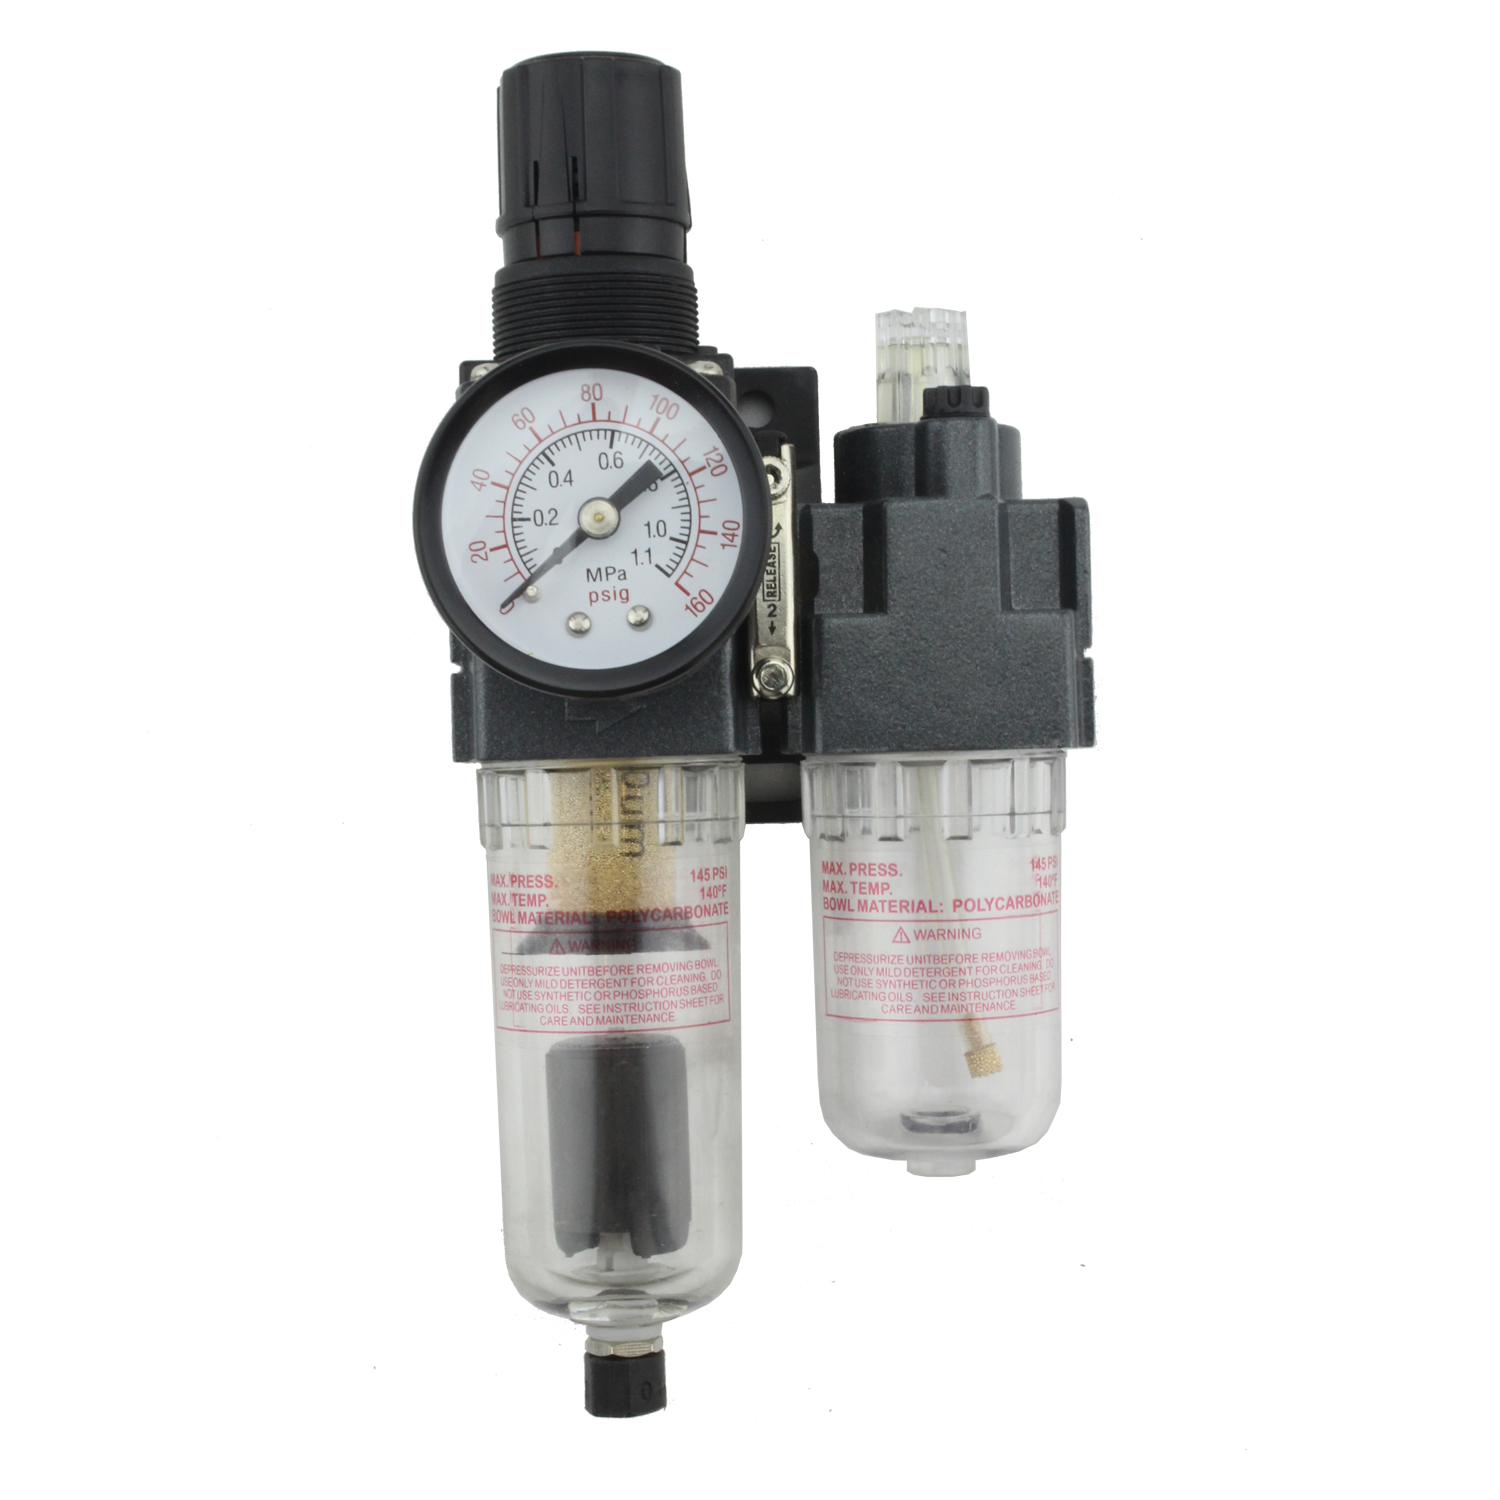 "EXELAIR™ by Milton FRL (Mini/Piggyback) Air Filter & Regulator w/Lubricator - 1/4"" NPT - Polycarbonate Bowl, Automatic Float (EX25PBL40A-02P)"